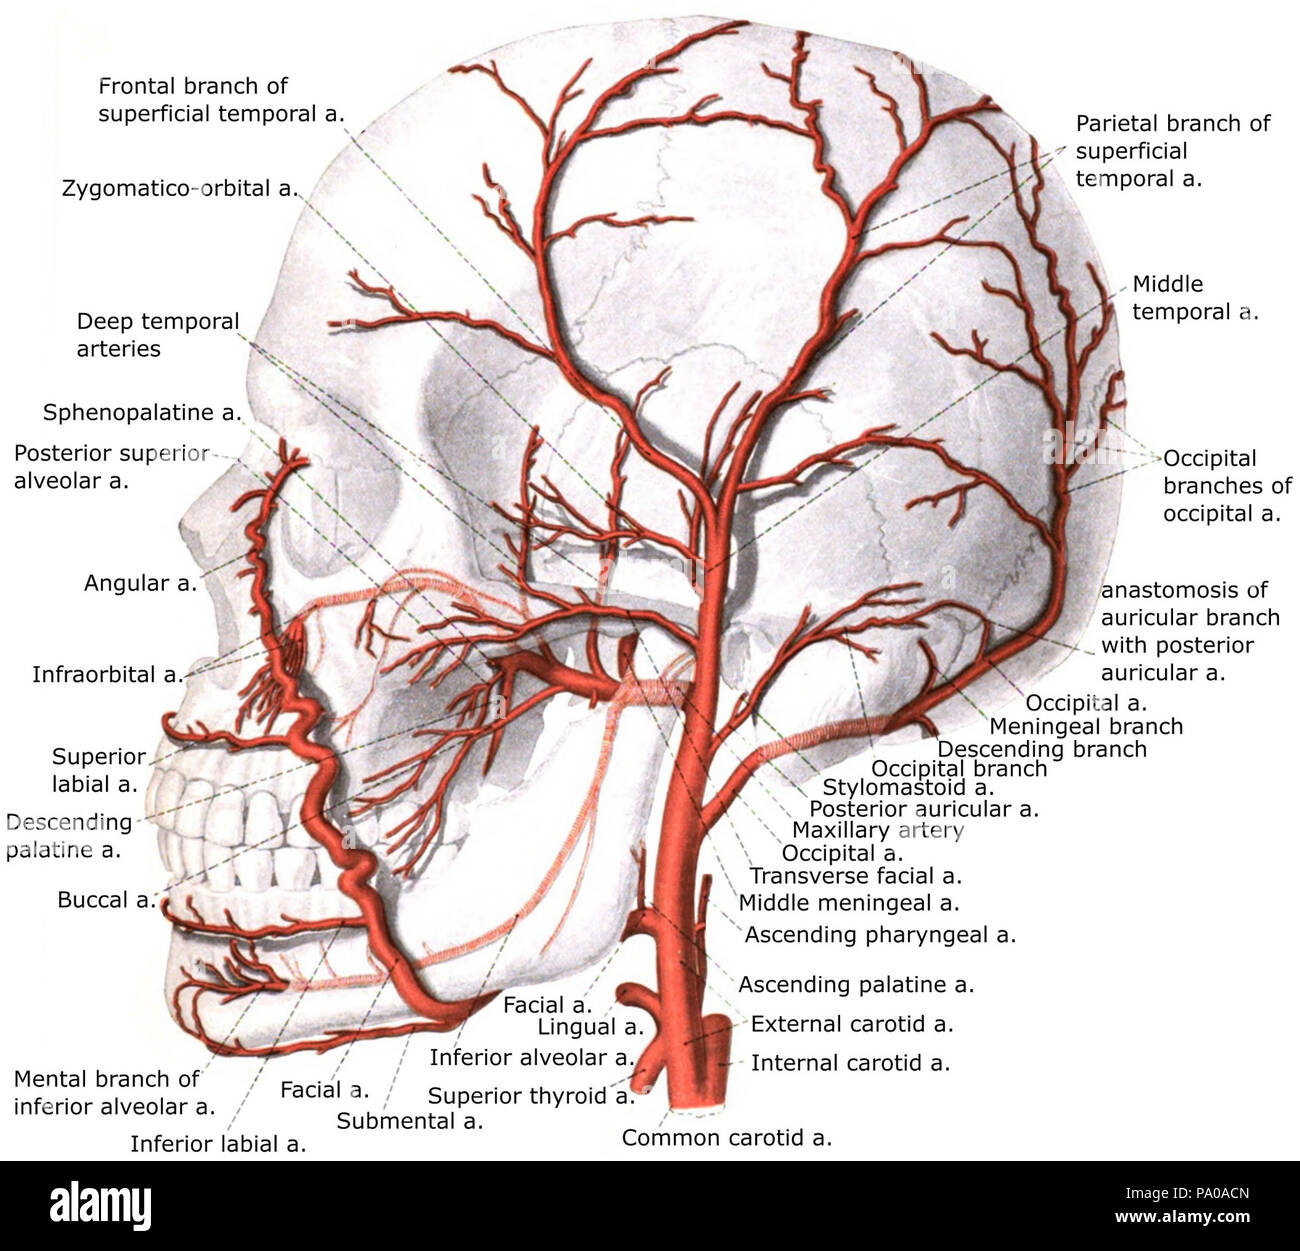 634 External Carotid Artery With Branches Stock Photo 212679173 Alamy